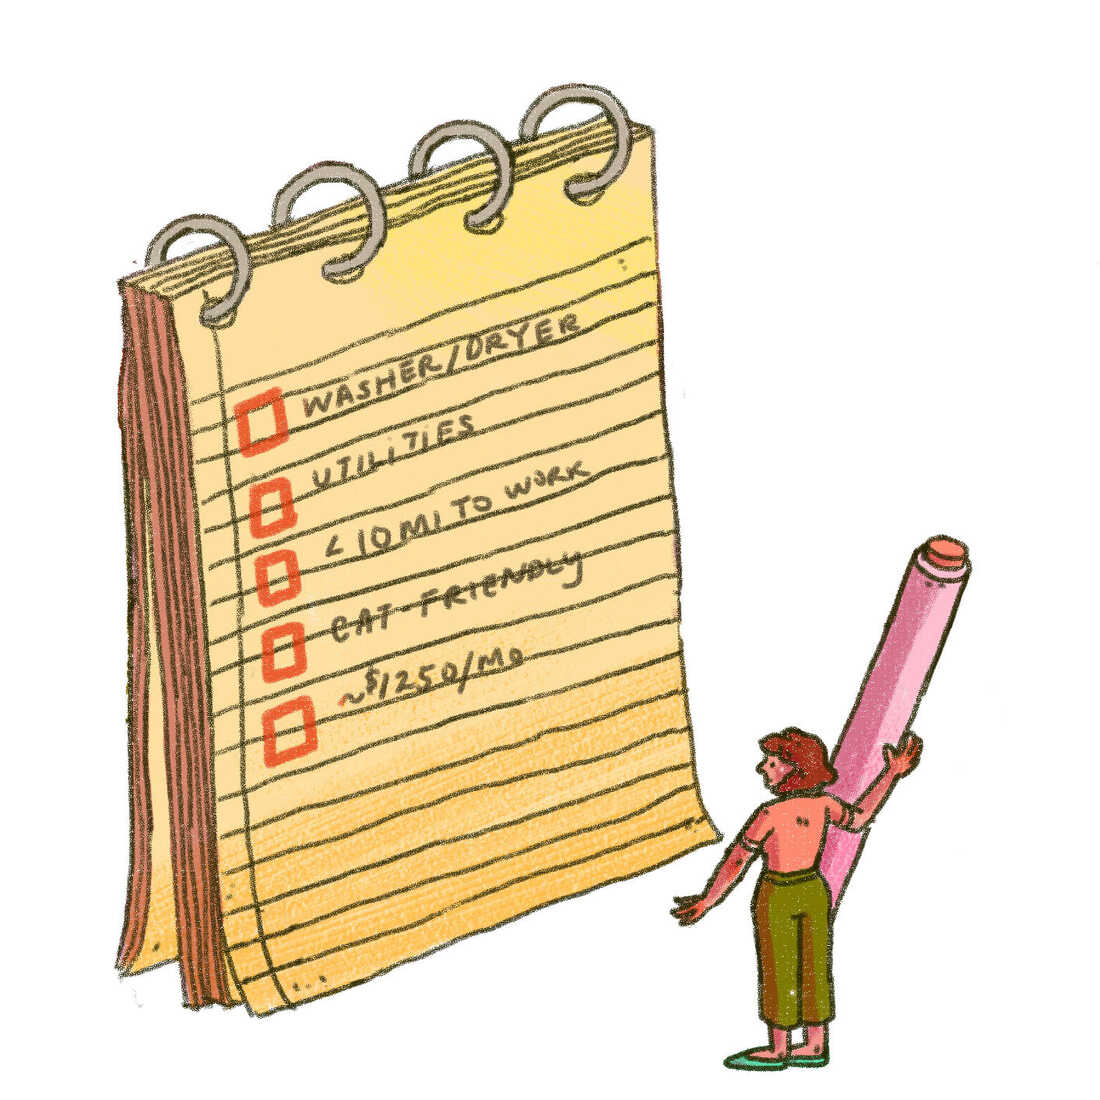 Illustration of a large checklist with items to consider before renting. Is the place cat-friendly? Does it fit your budget? A small person with a large pen stands before the checklist looking up at it.